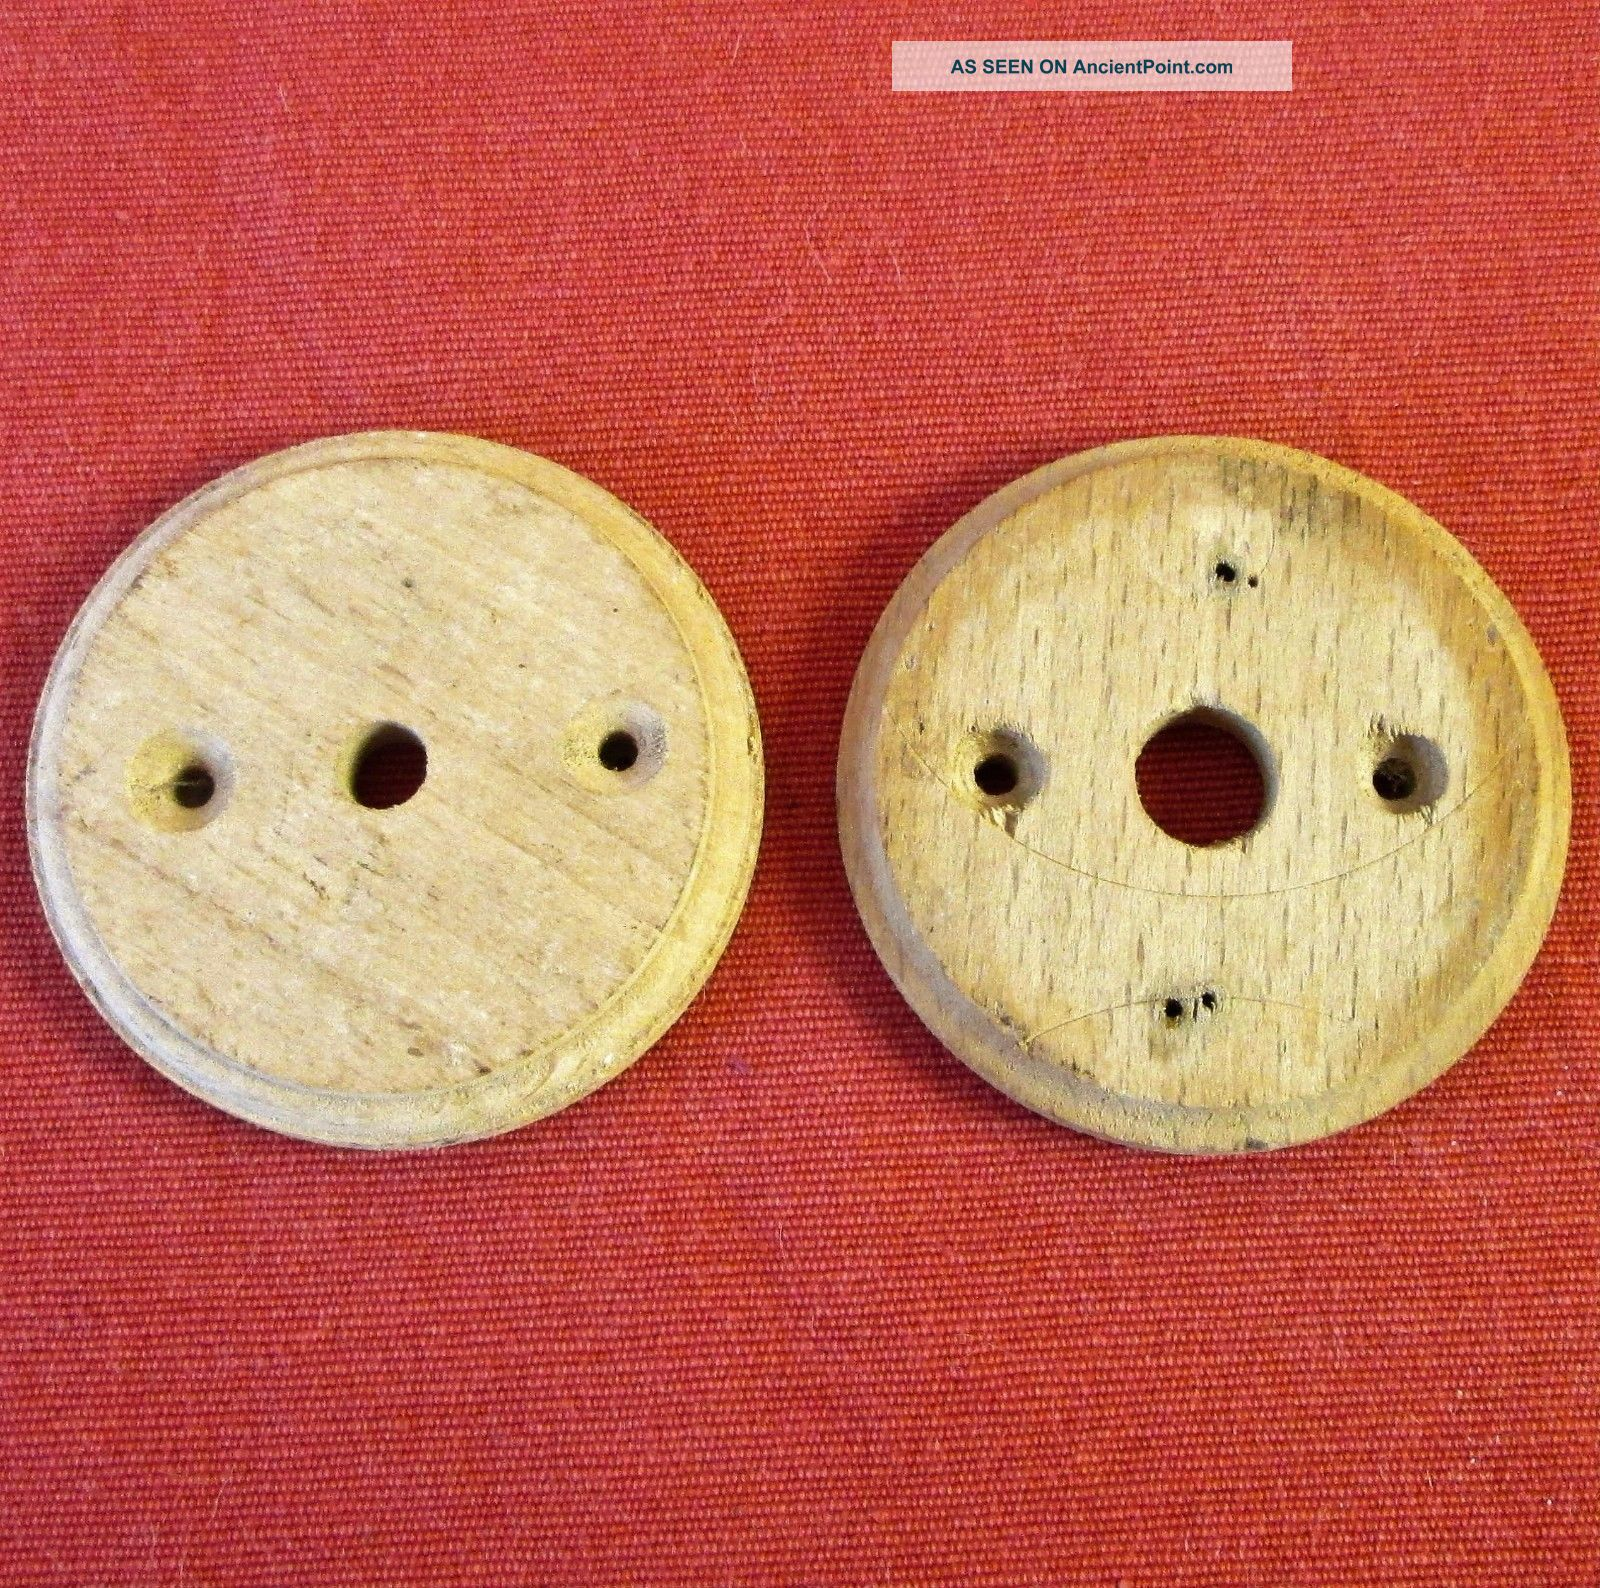 Pair Vintage French Round Wood Pattress Mounts For Light Switch / Ceiling Roses Light Switches photo